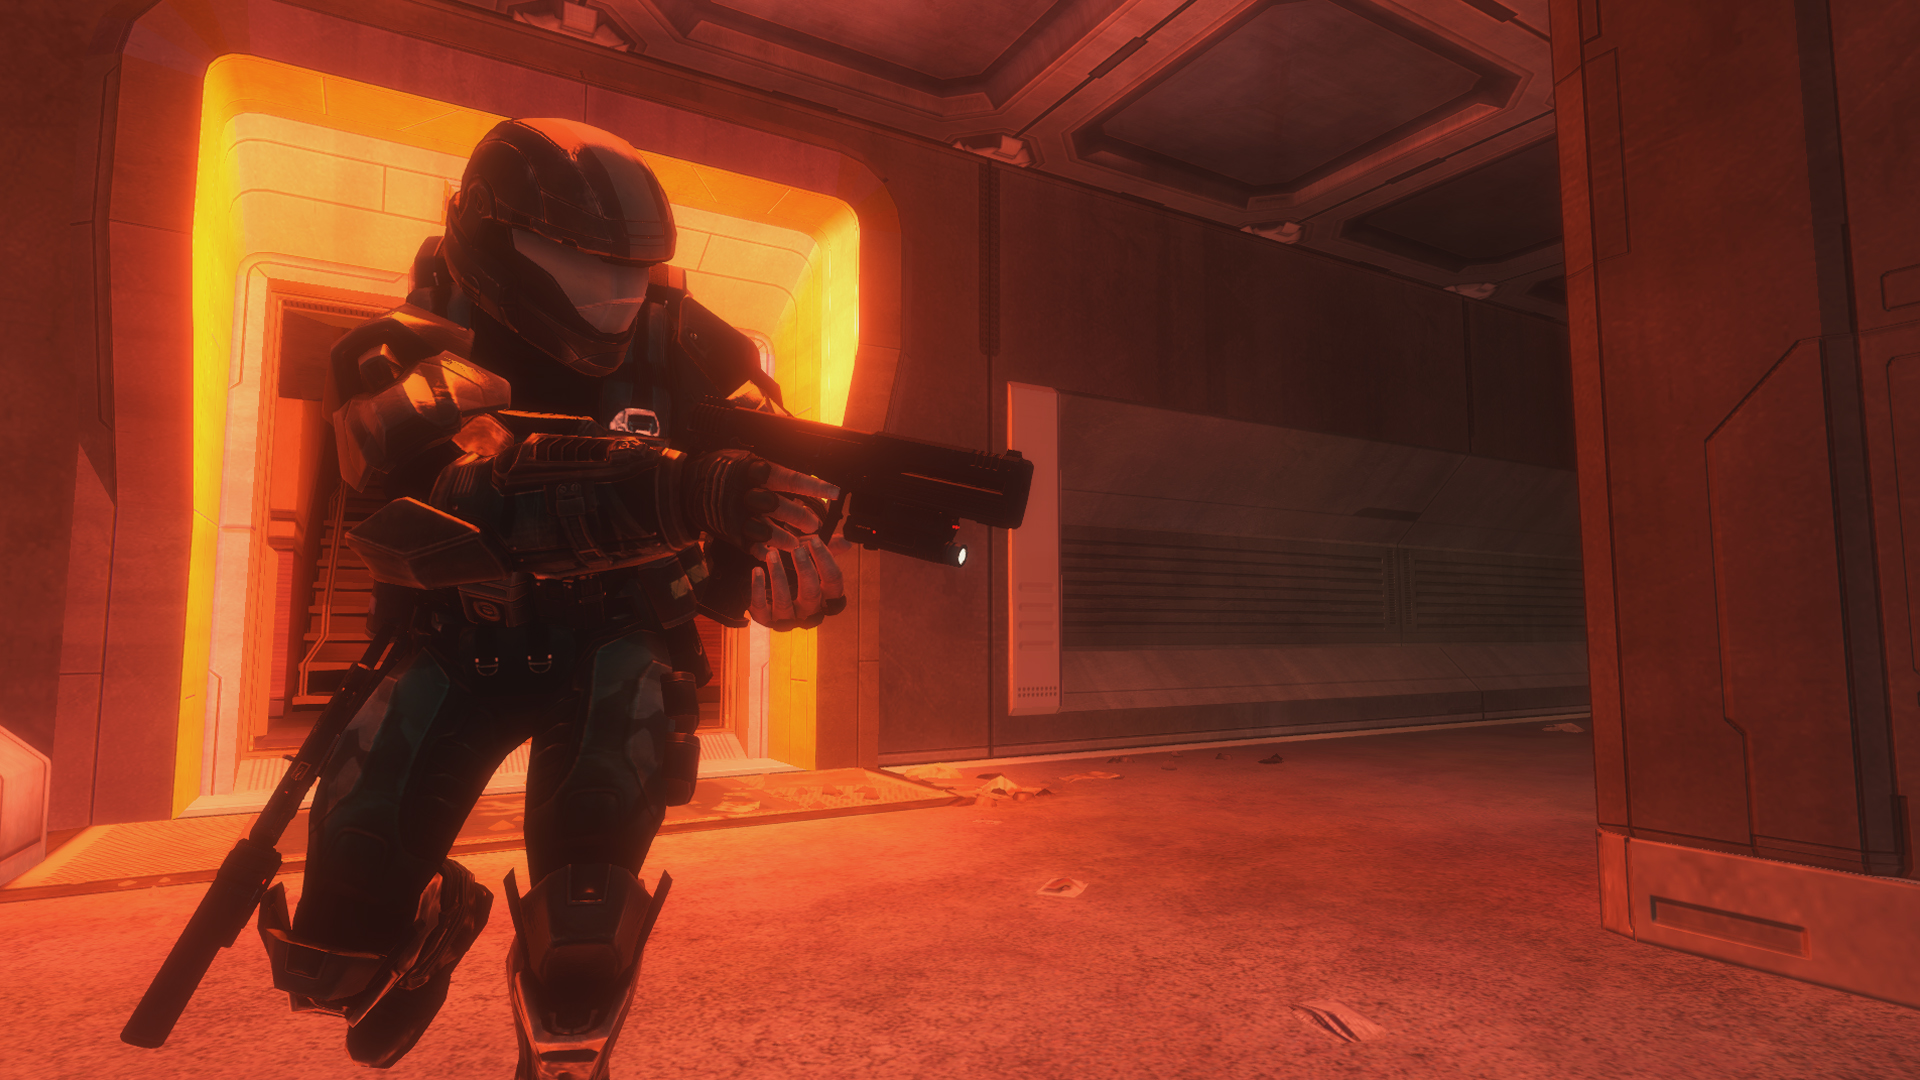 Halo: The Master Chief Collection - going around a corner in 'Coastal Highway' chapter of Halo 3: ODST